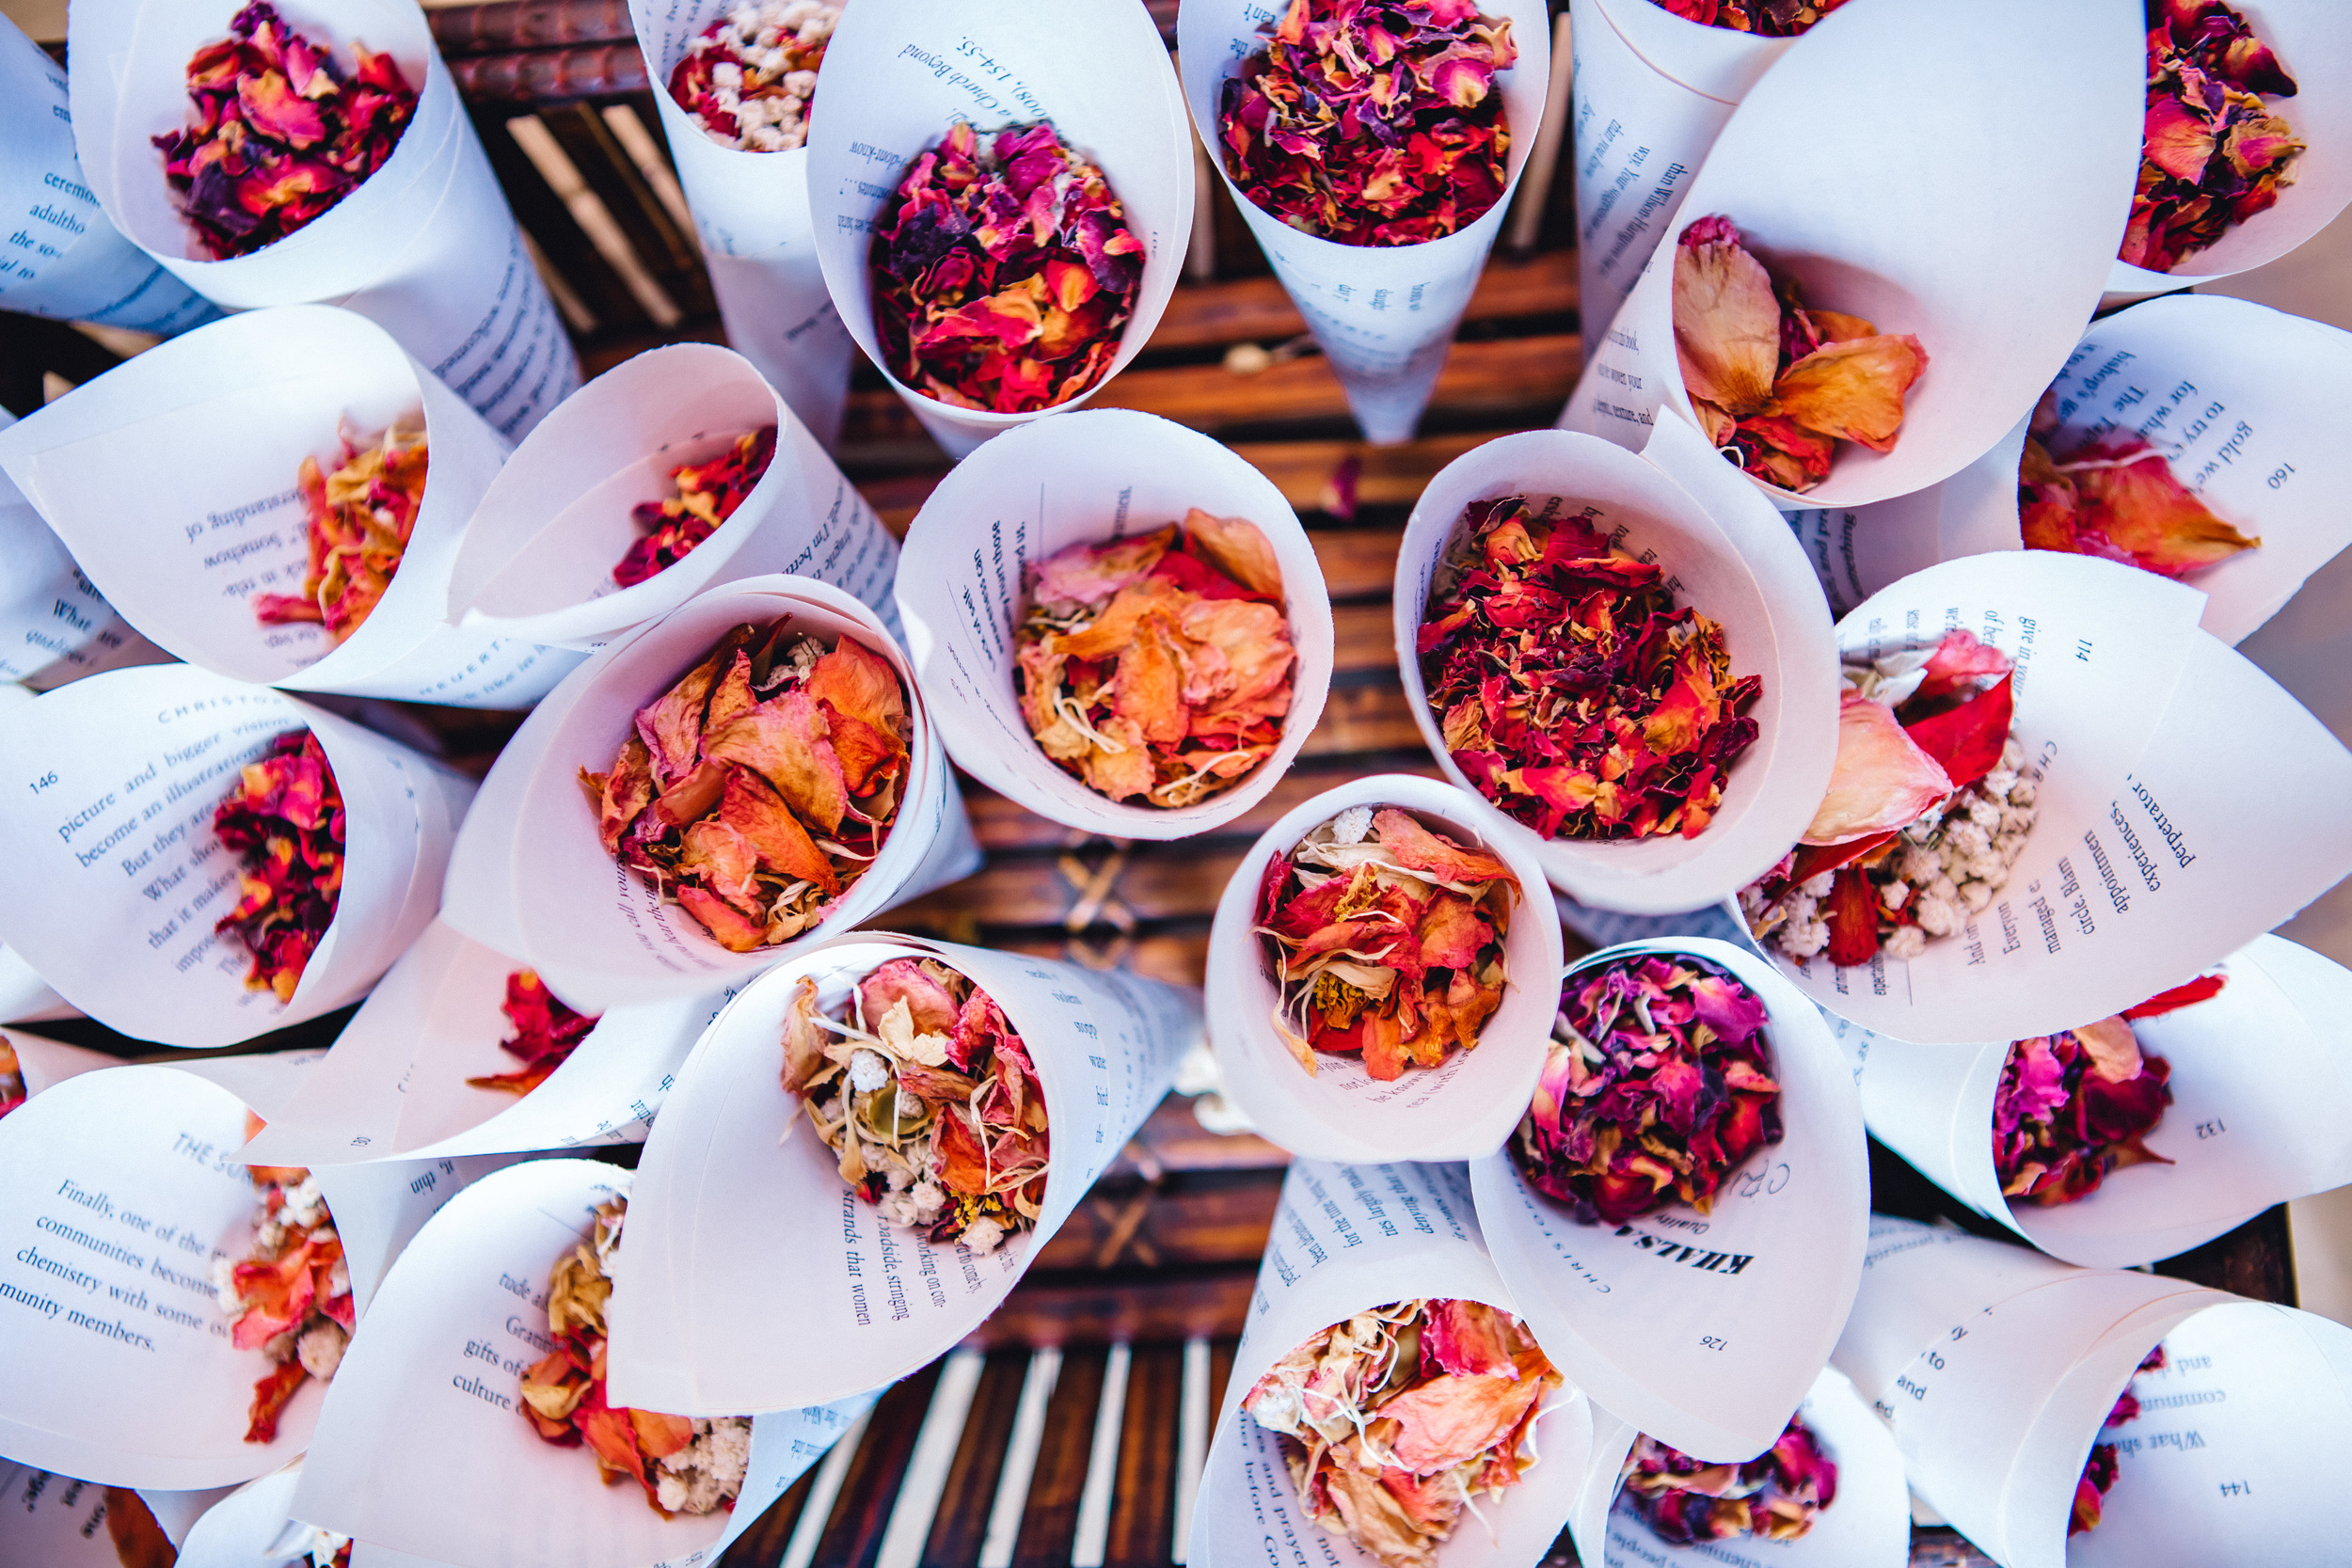 Book page cones with dried roses for guests to toss during the wedding exit.